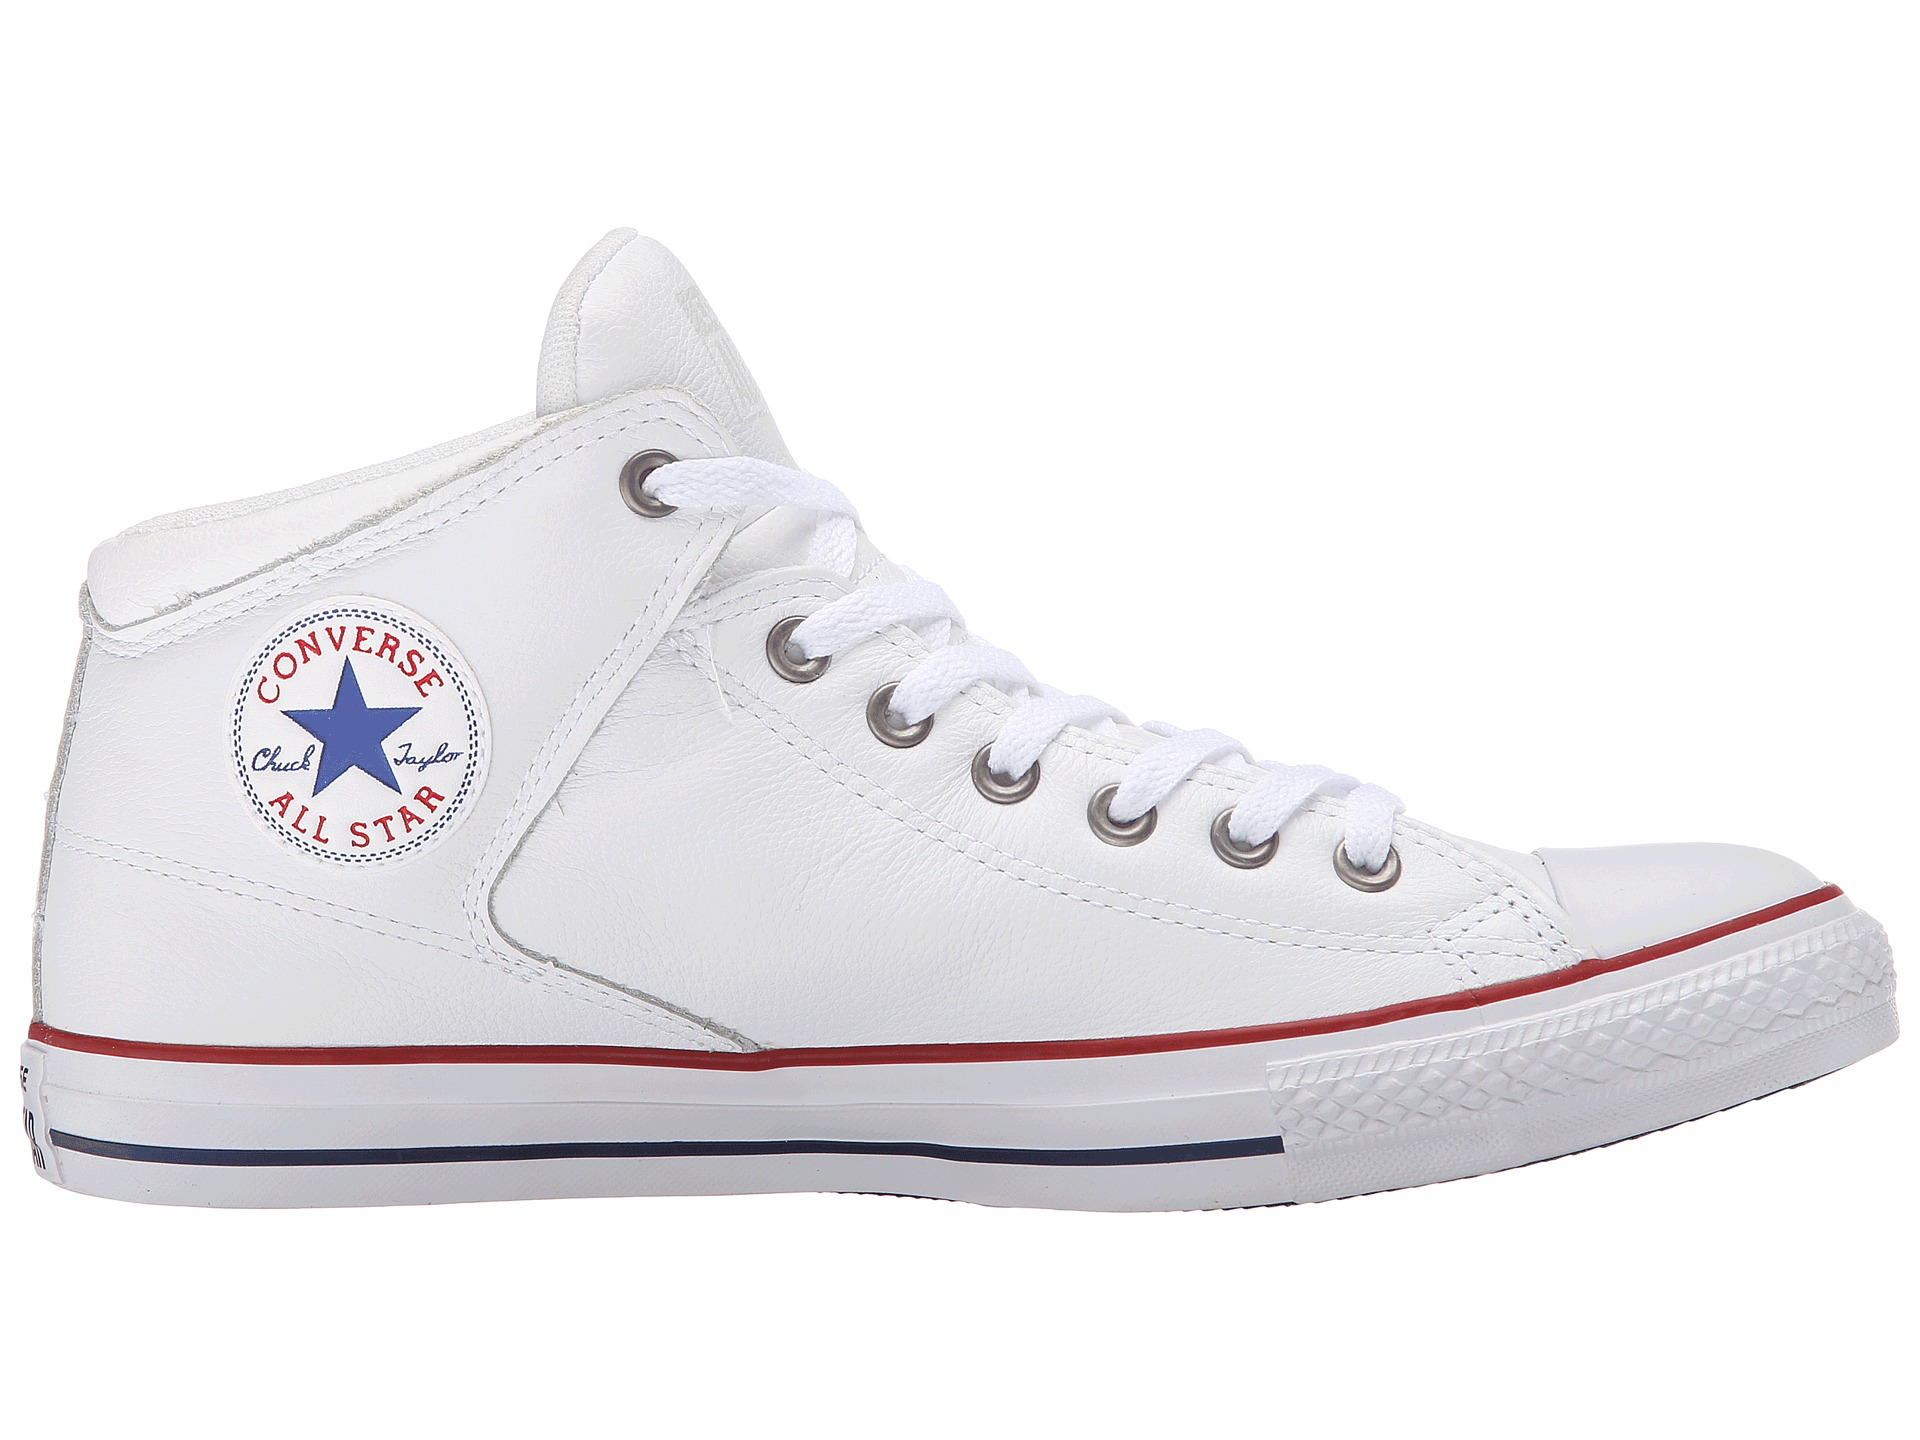 Converse All Star Shoes High Top